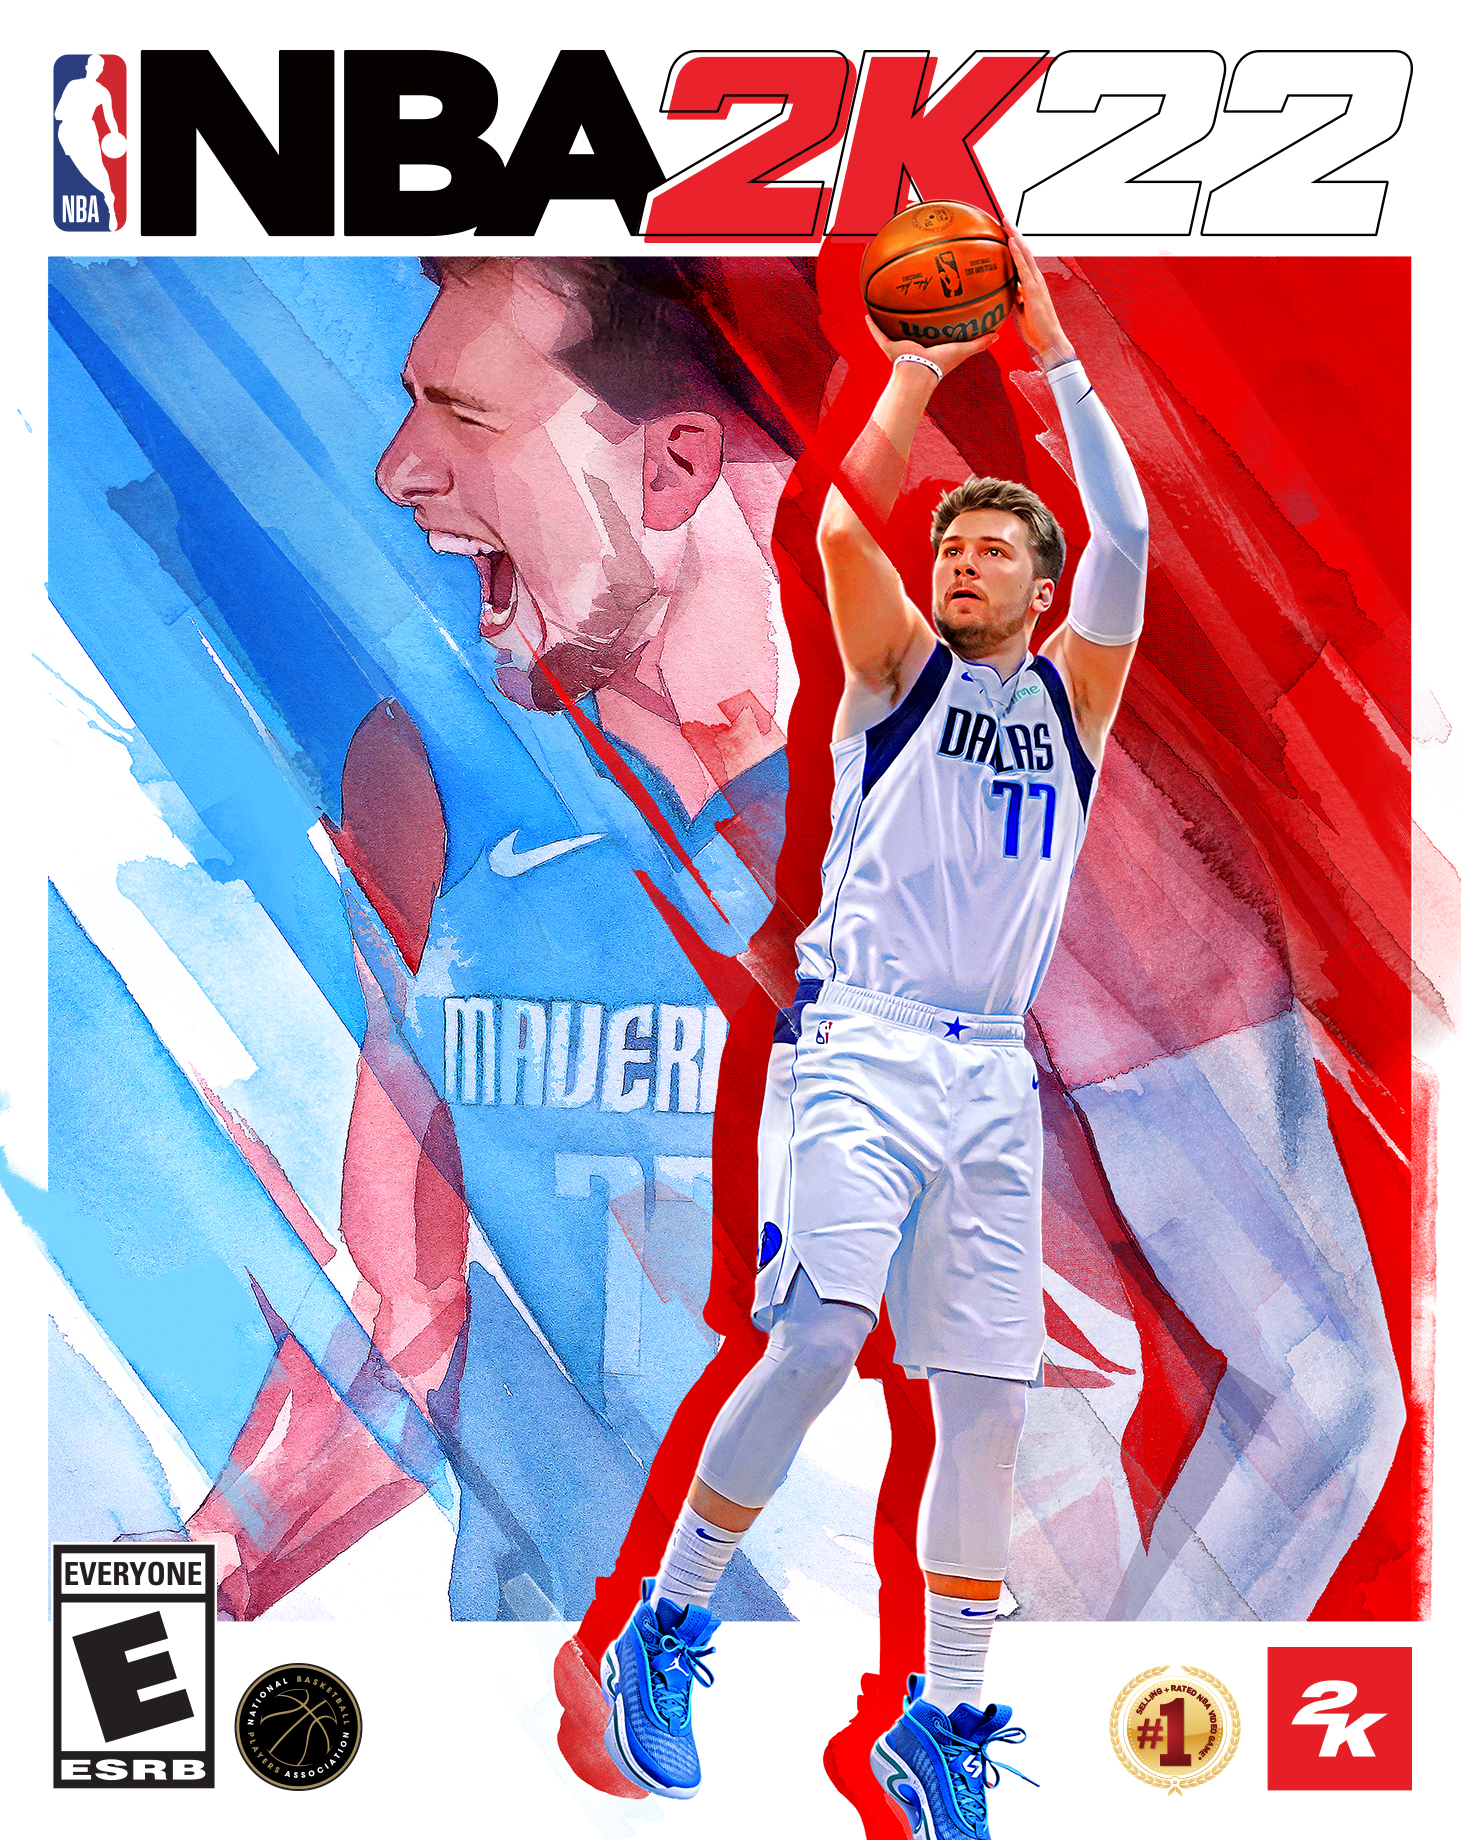 2K22 Release Date . Nba 2k22 Release Date Announced With Cover Athletes Doncic Durant Others Polygon